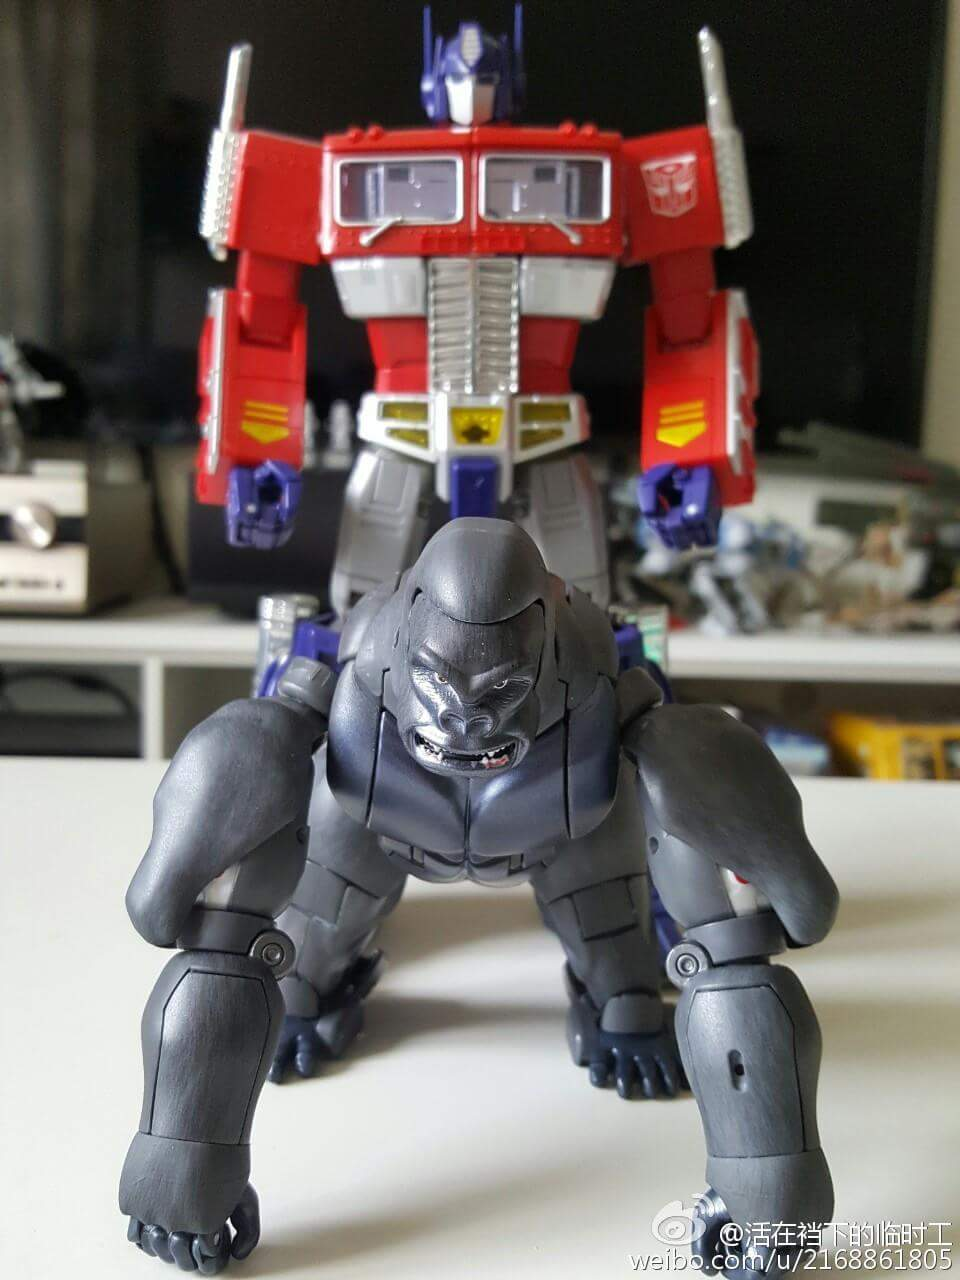 [Masterpiece] MP-32, MP-38 Optimus Primal et MP-38+ Burning Convoy (Beast Wars) - Page 3 MxbhvvYK